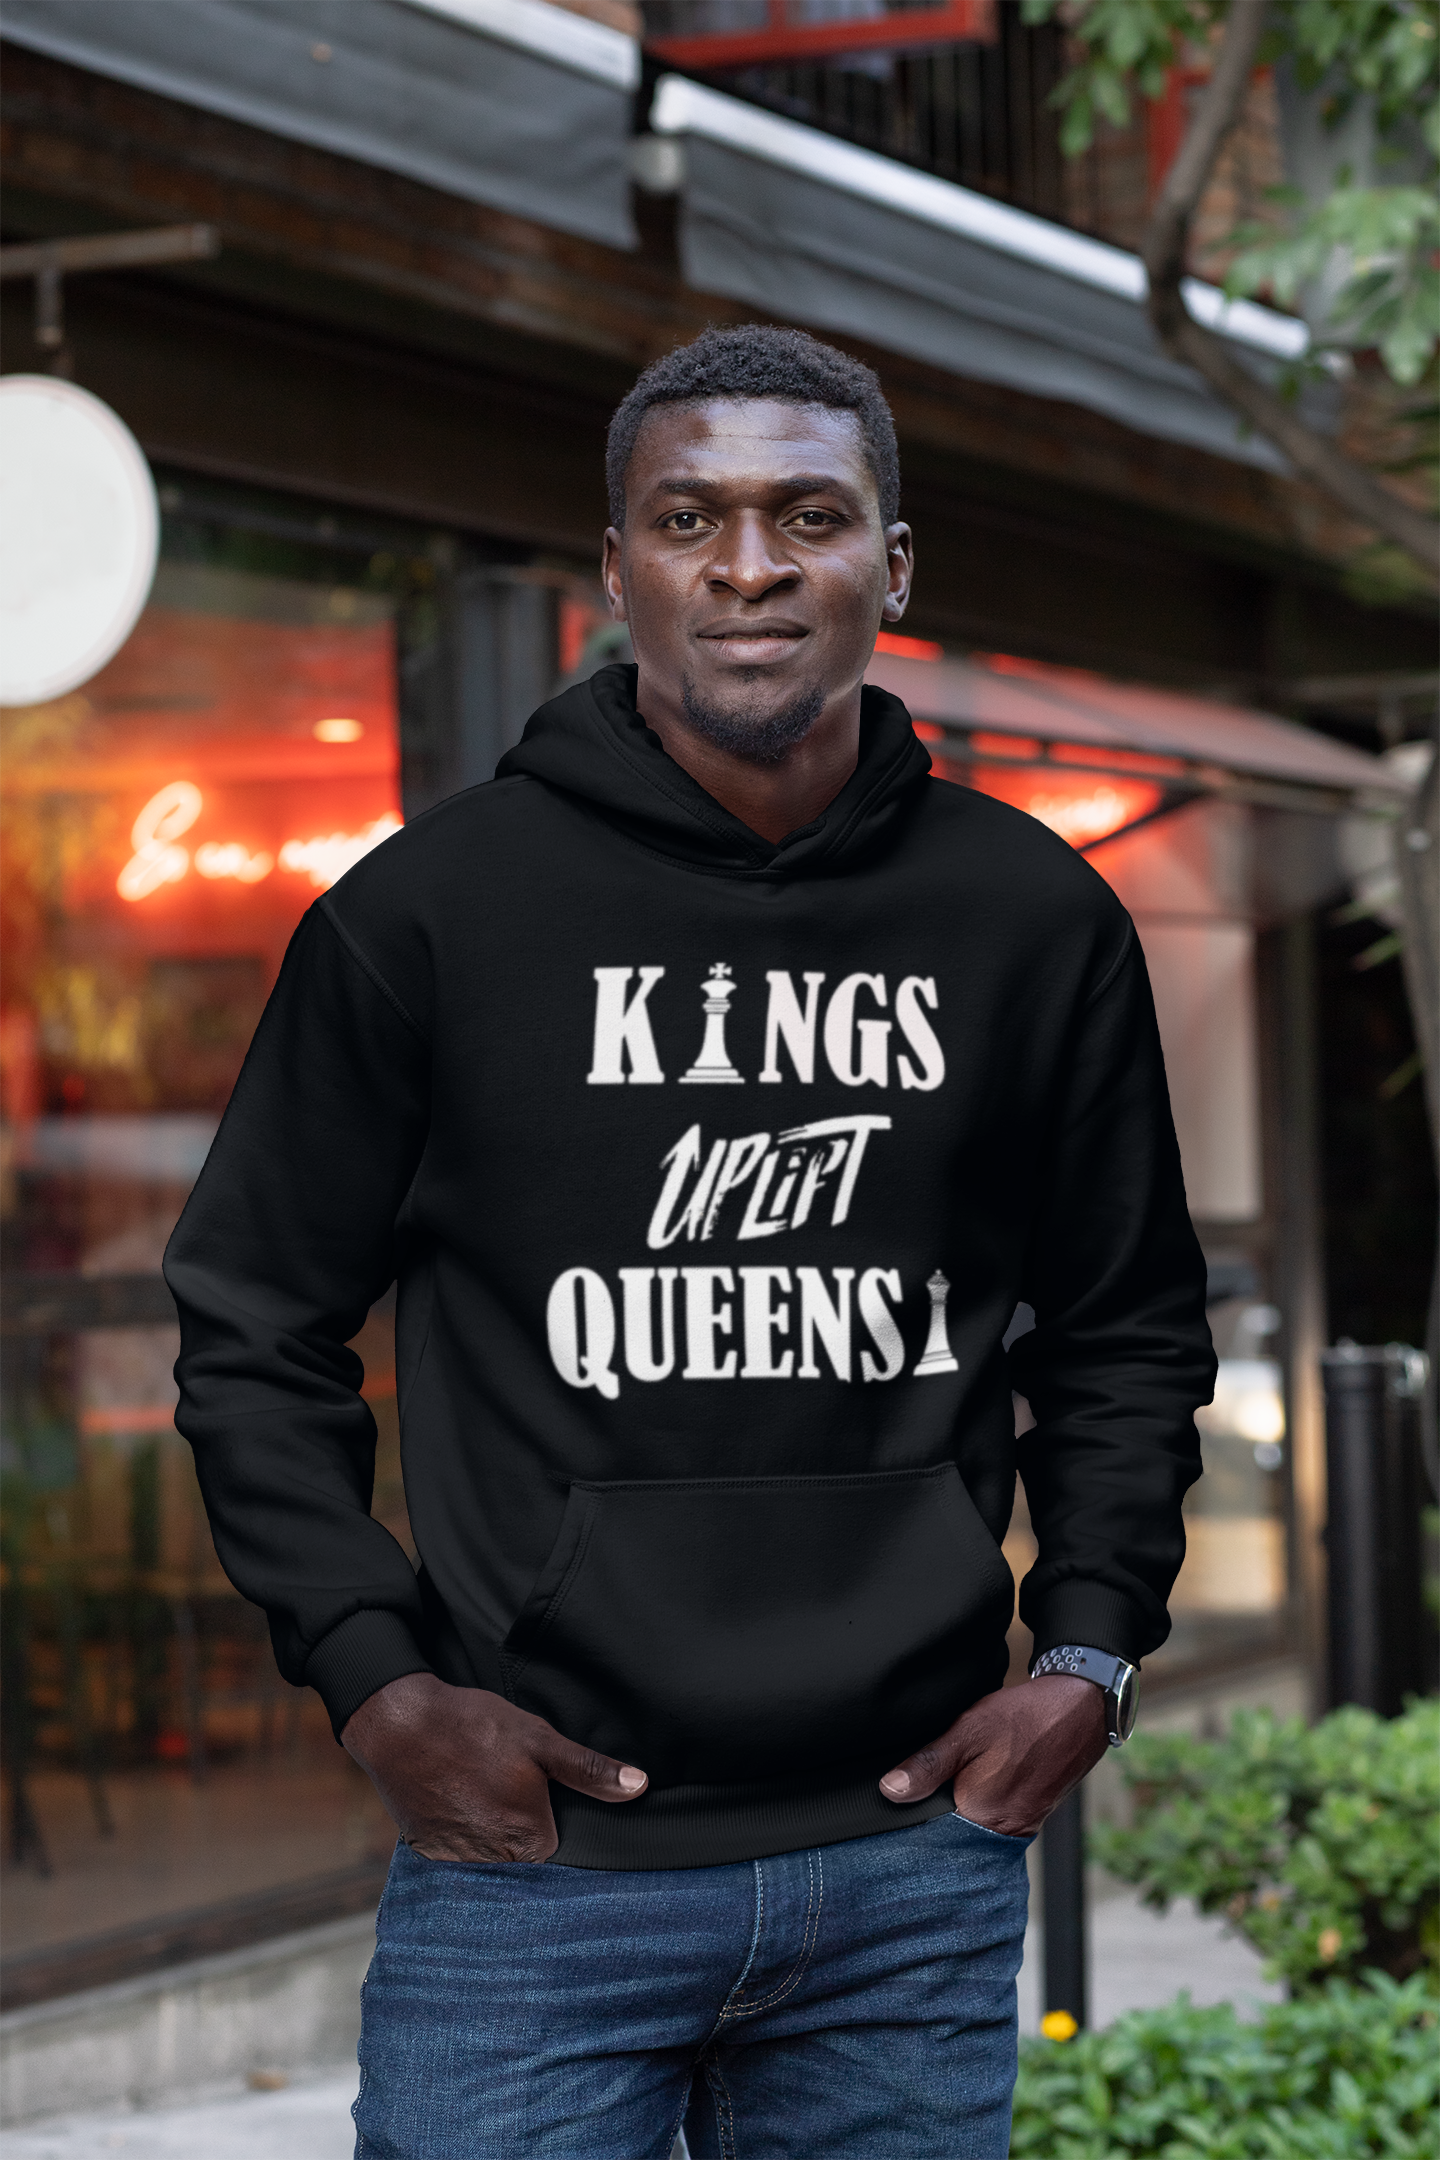 Limited Edition Kings Uplift Queens Hoodie - Black Love Boutique